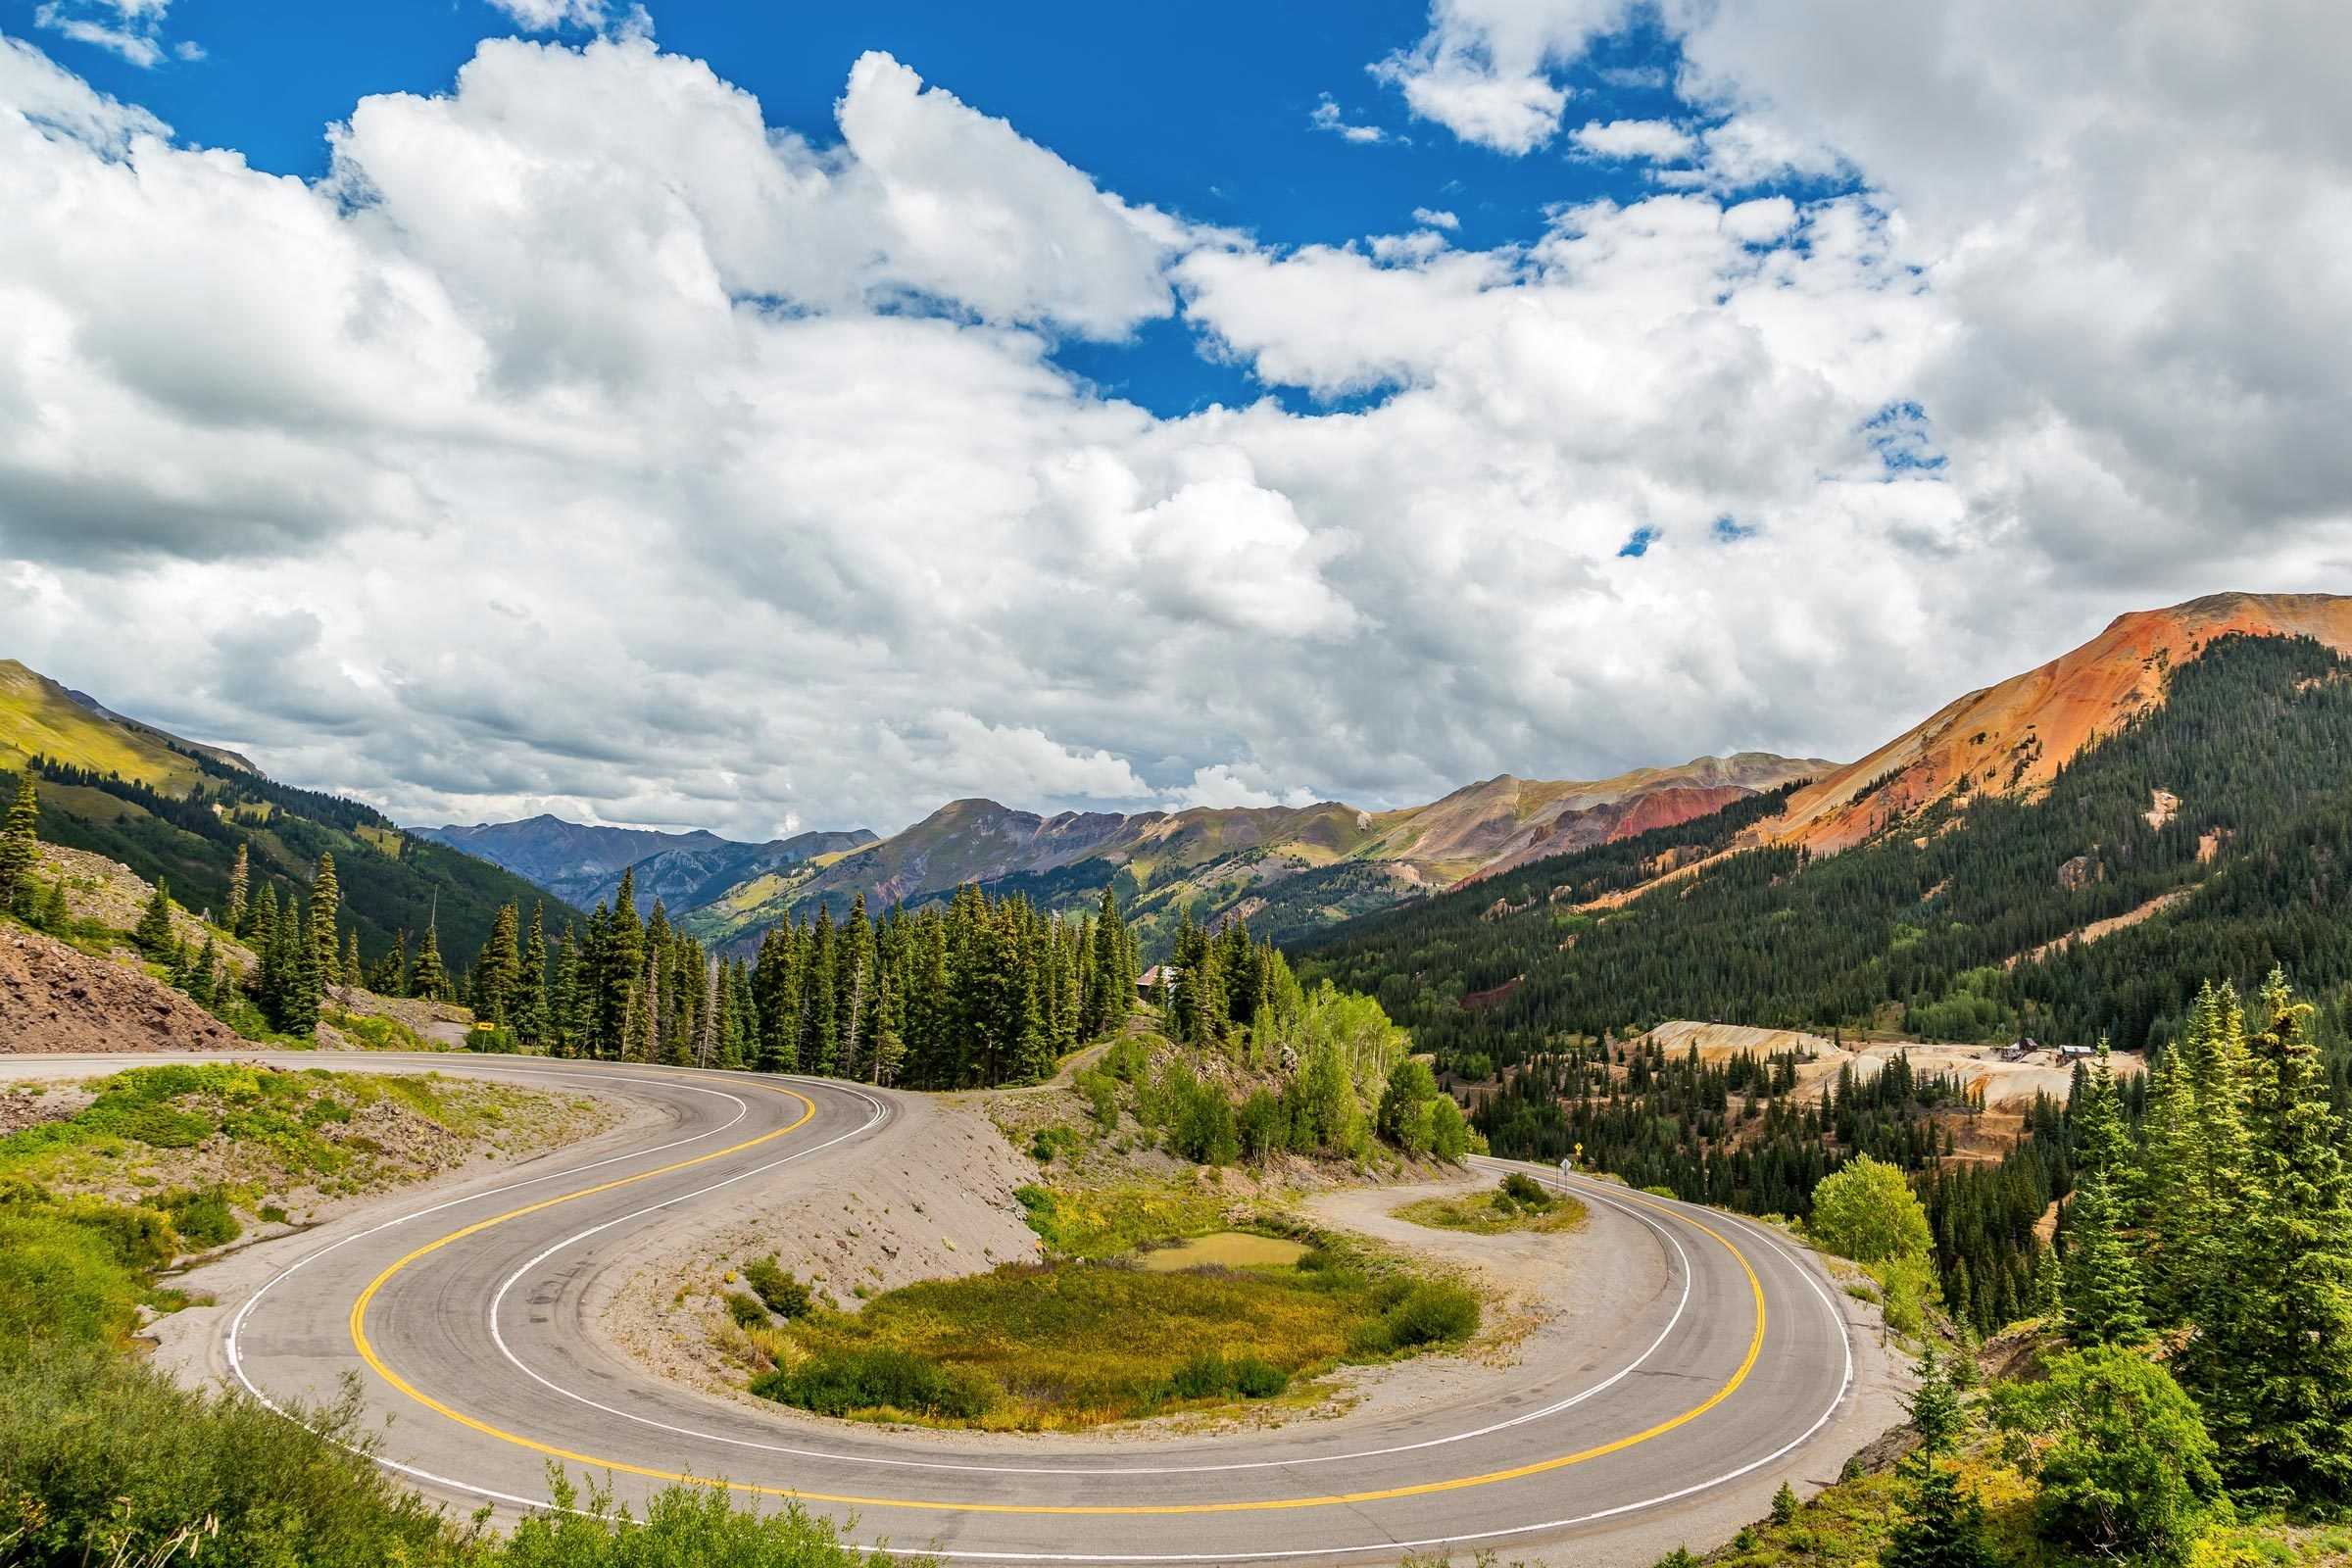 the winding road of the Million Dollar Highway, a piece of the San Juan Skyway in Colorado, with breaktaking views of the San Juan Mountains in the background